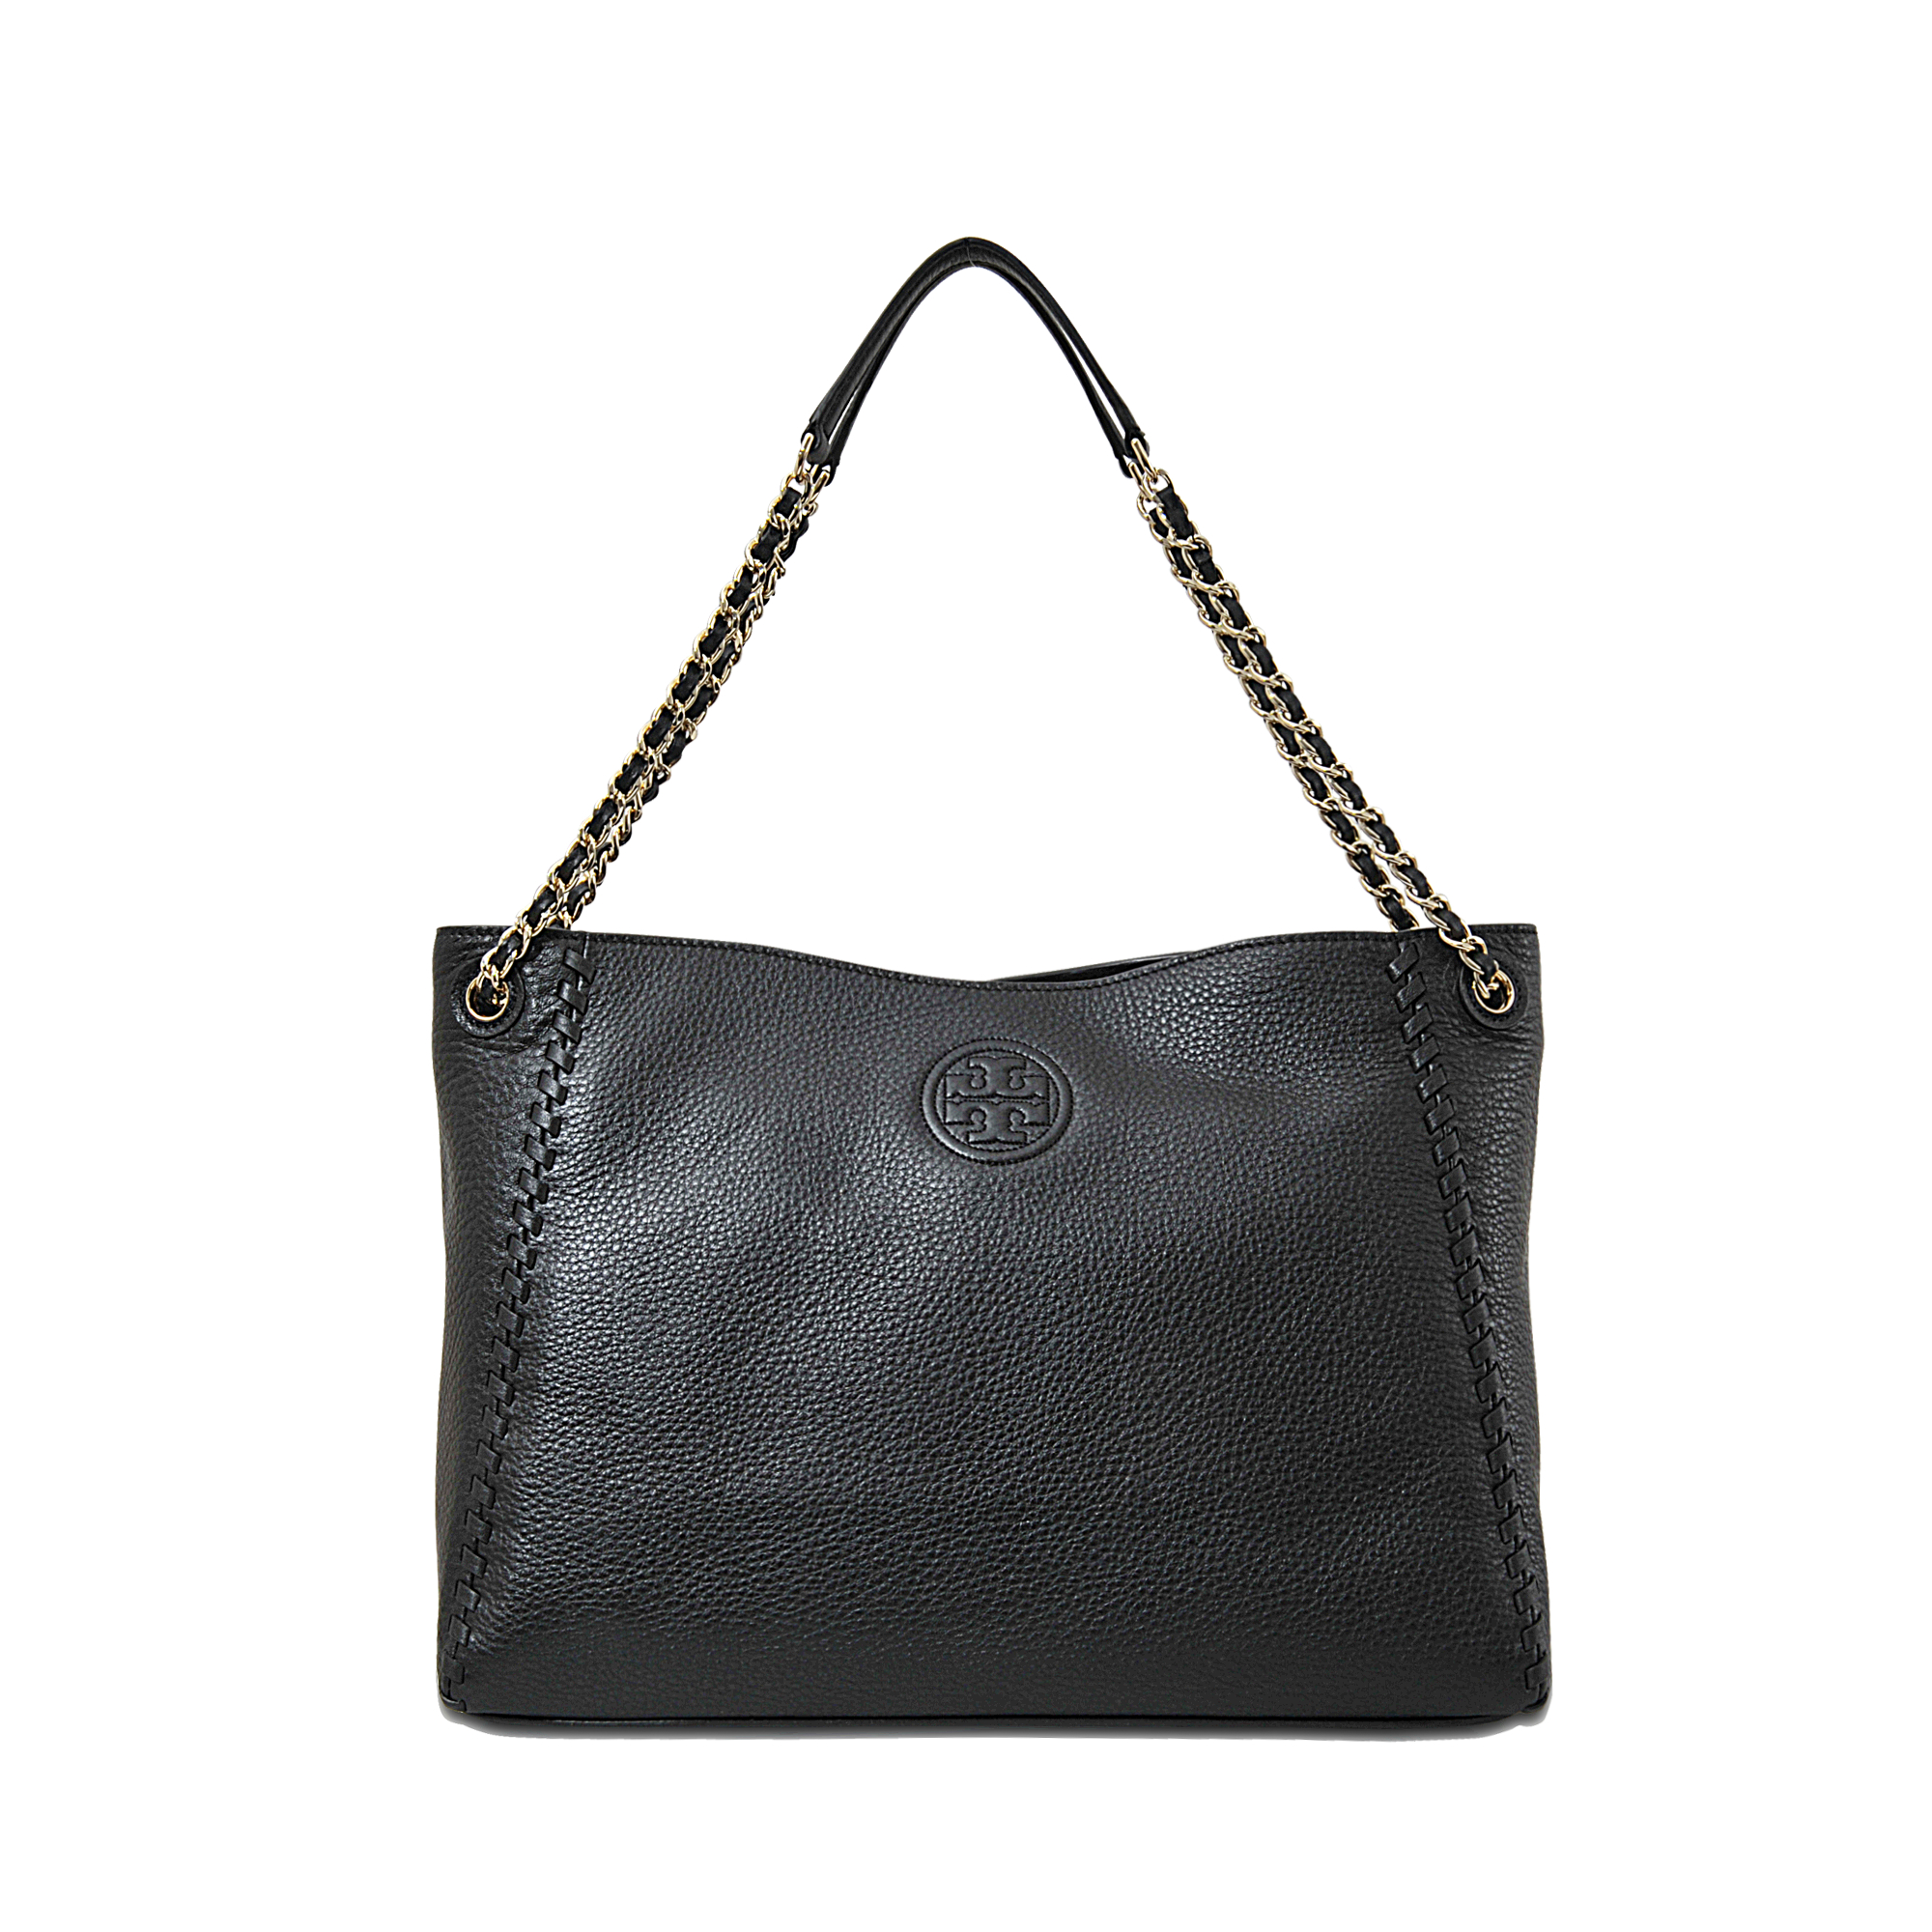 77ec0489e6d8 Lyst - Tory Burch Marion Chain-shoulder Slouchy Tote in Black